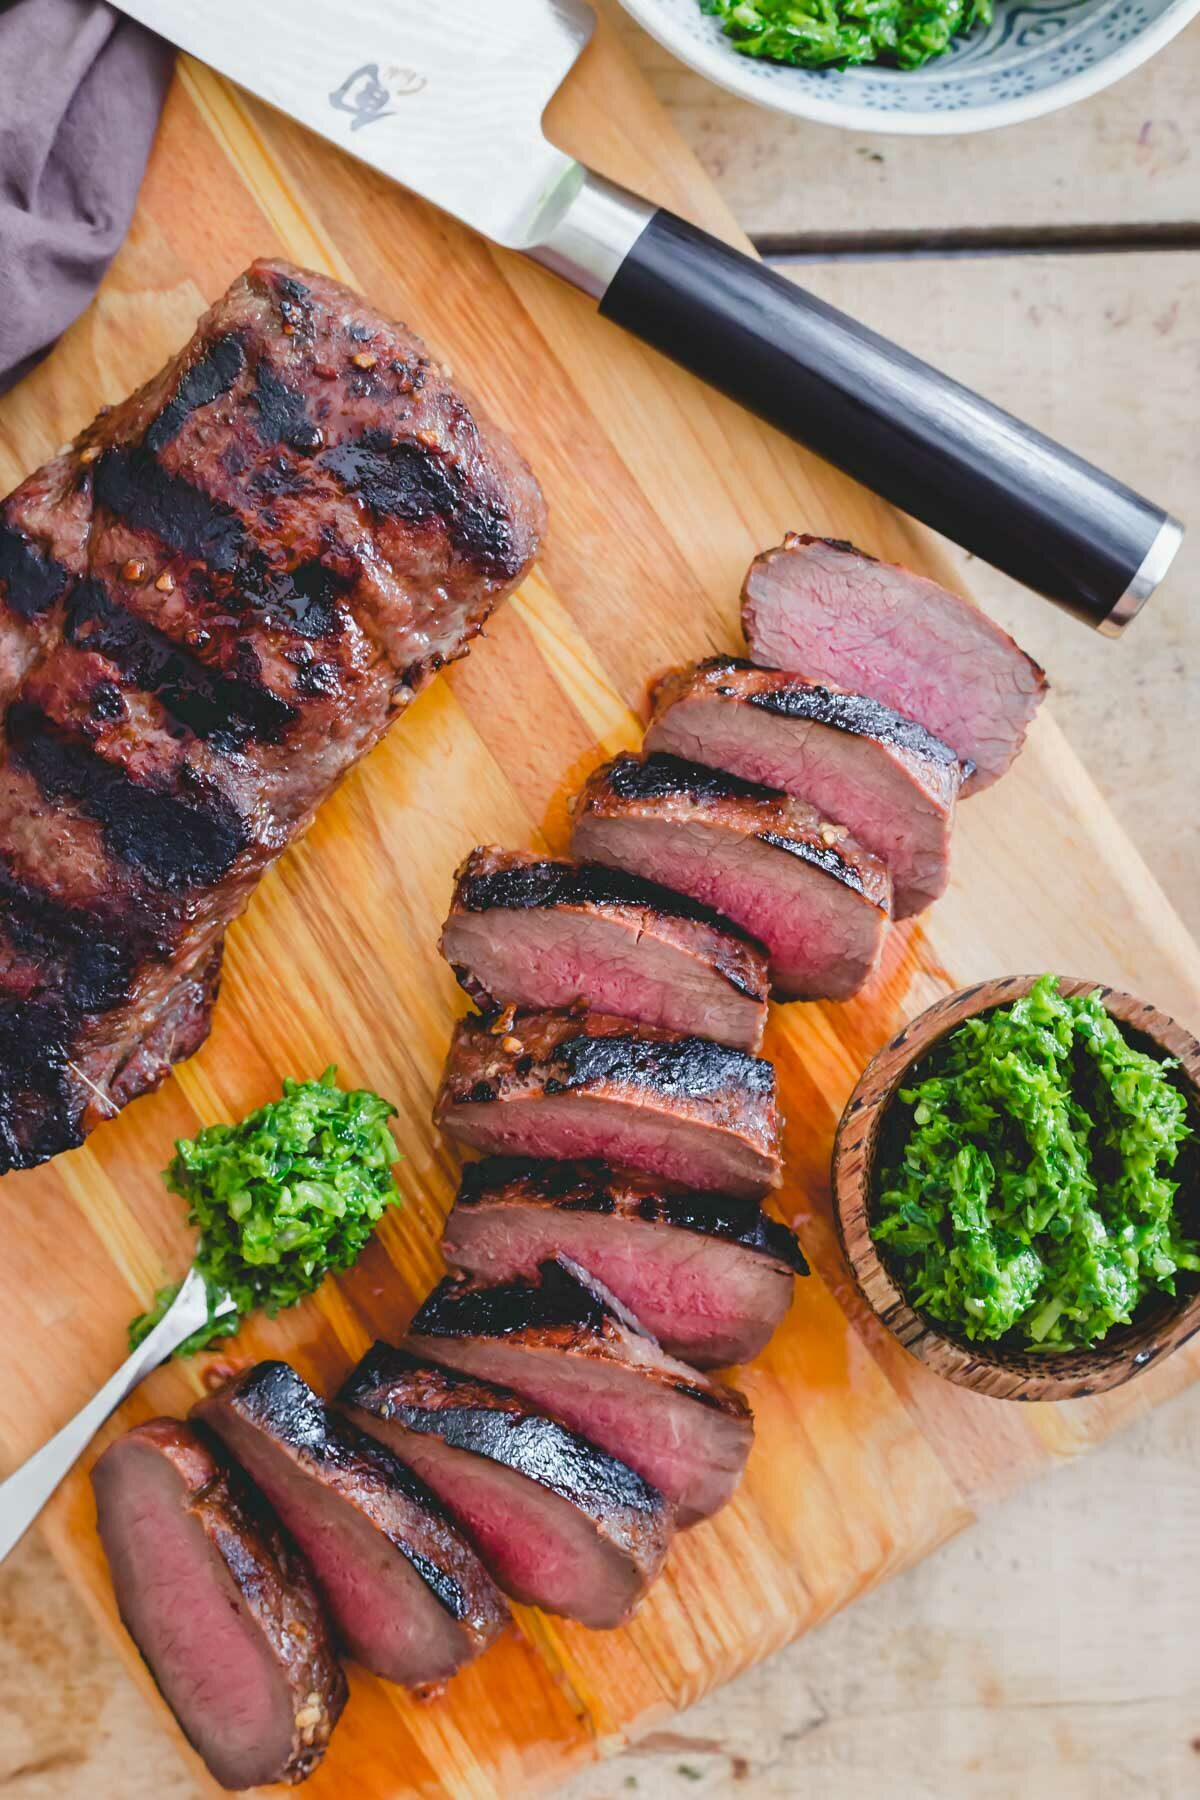 Perfectly grilled venison backstrap sliced and served with a ramp pesto.